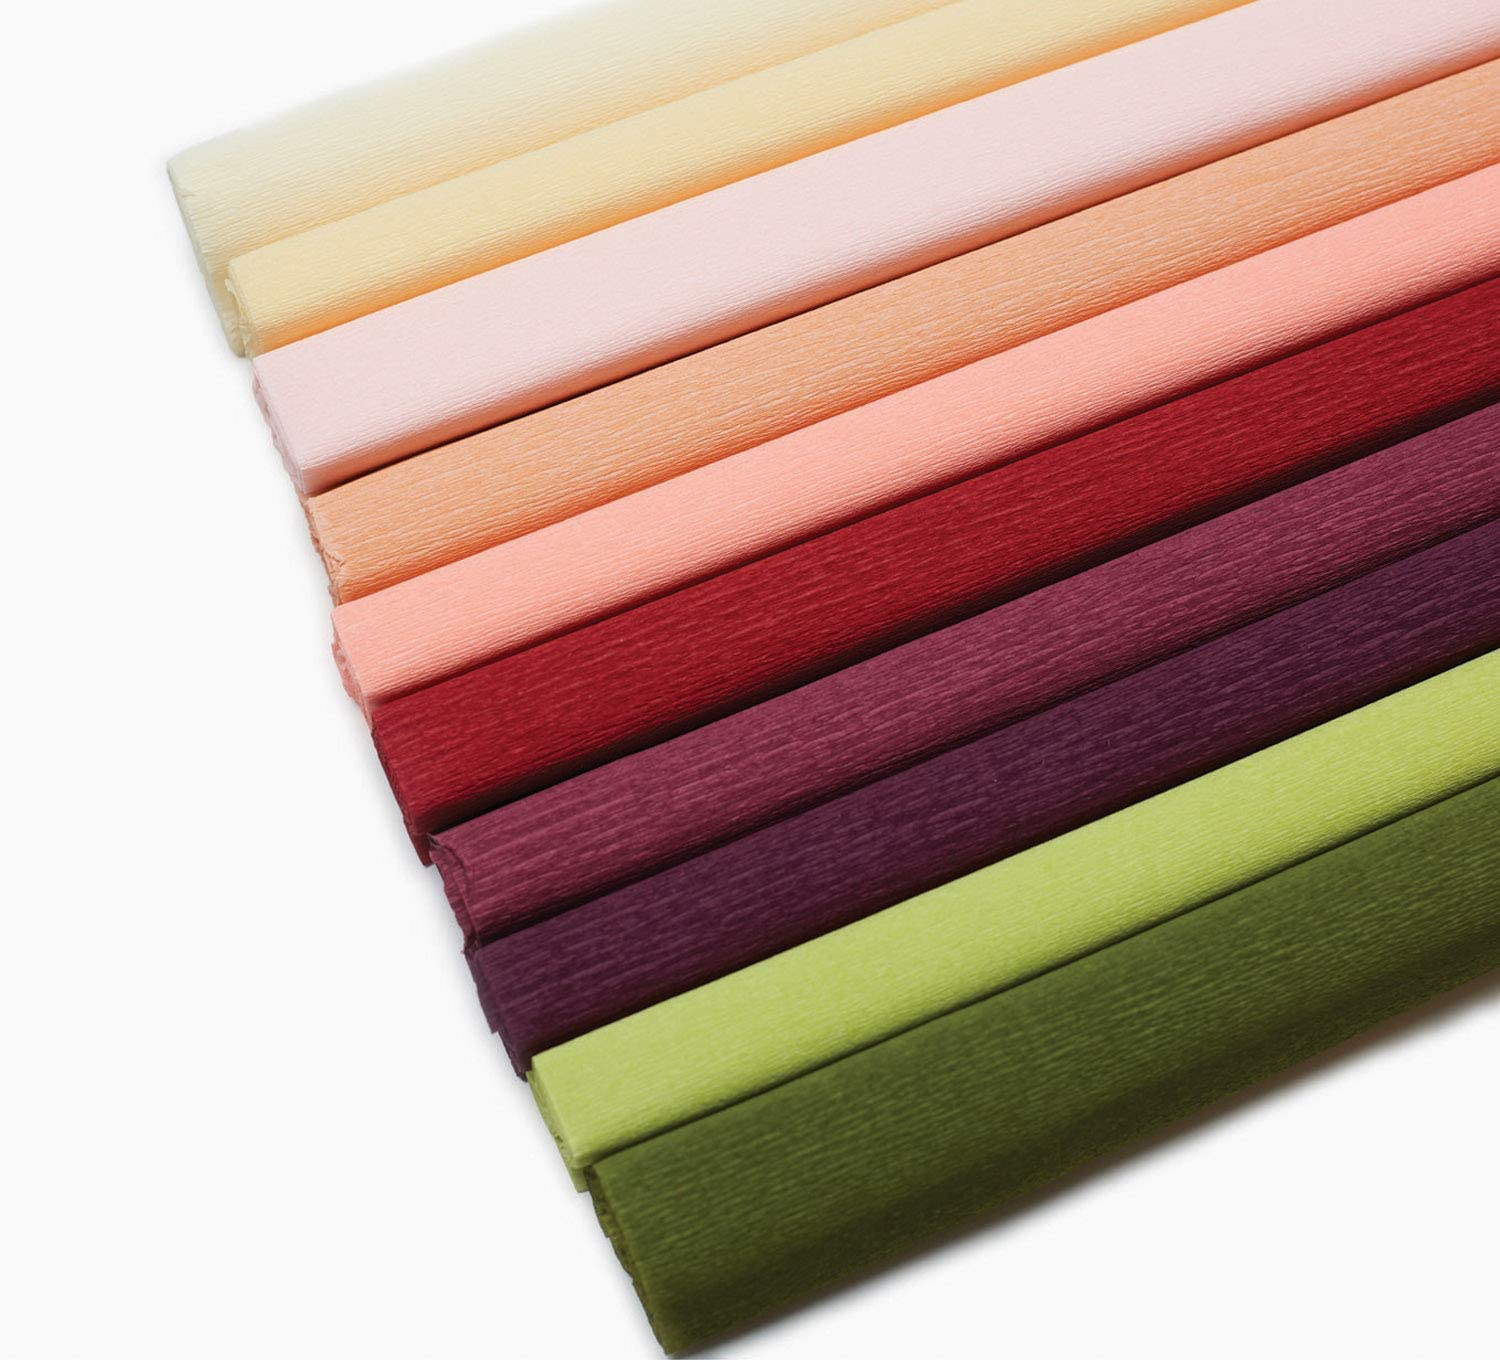 Blush 10.7-Square Feet LG11007 Lia Griffith Extra Fine Crepe Paper Folds Roll